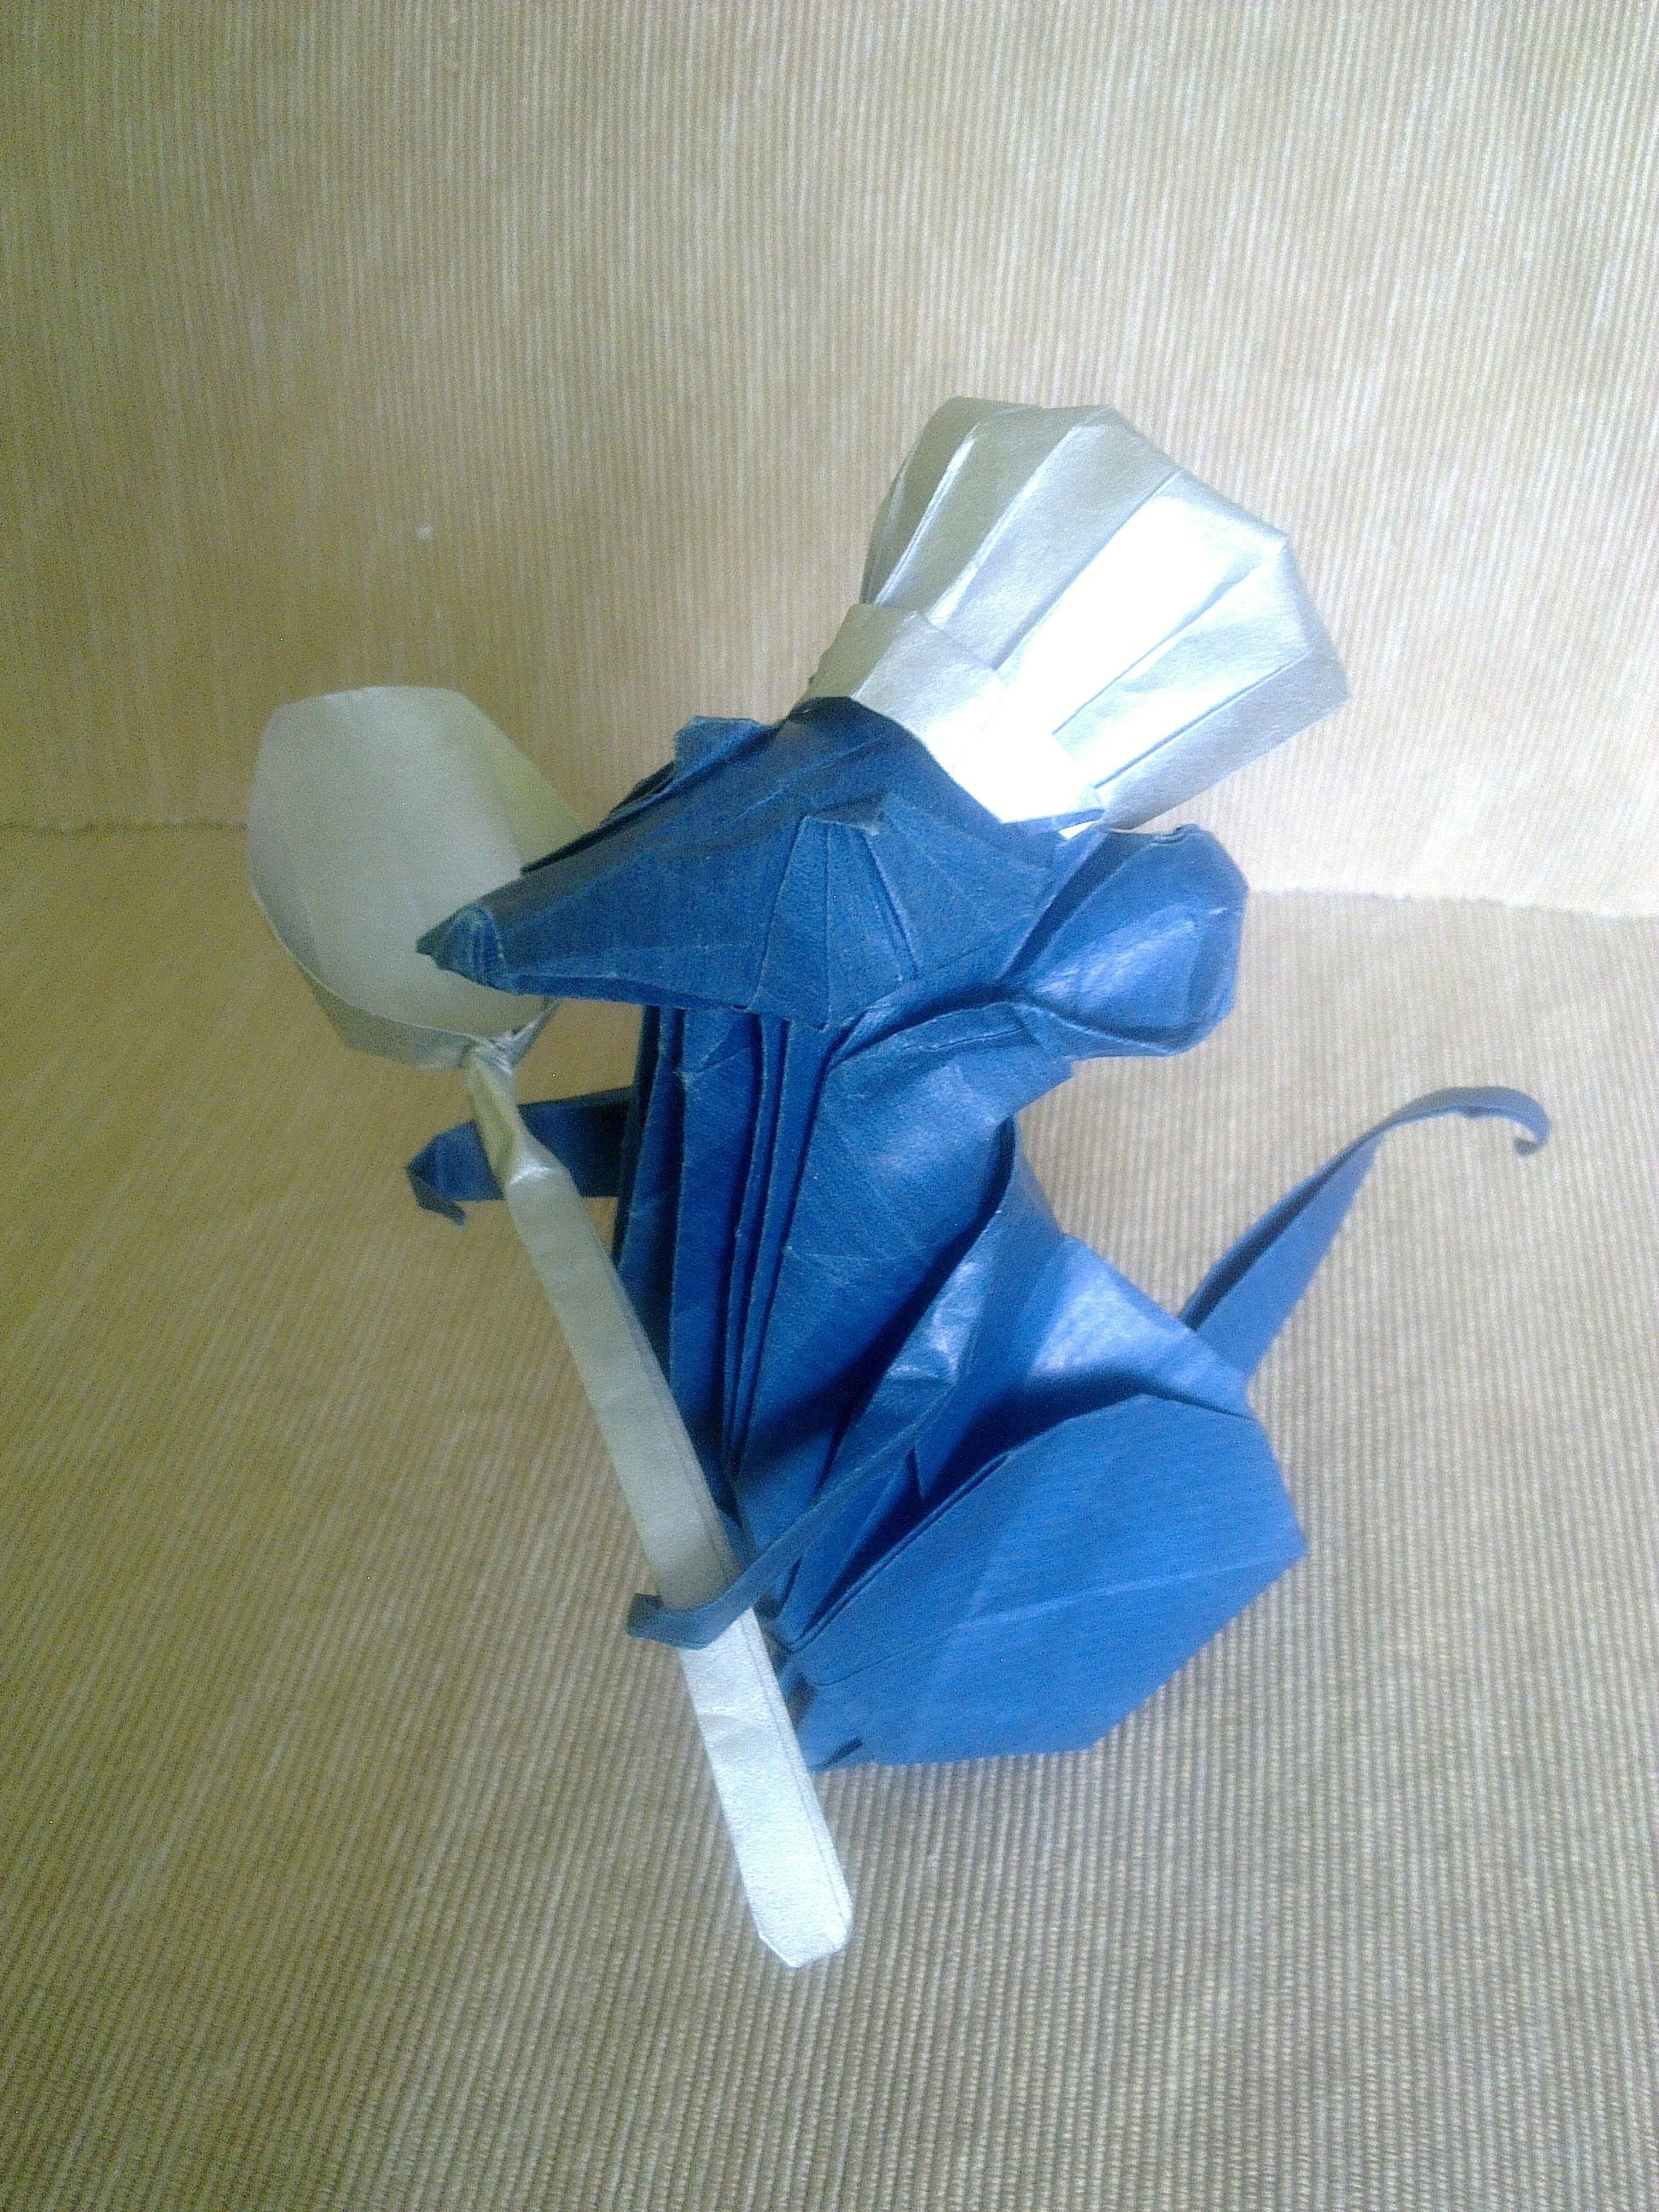 Origami ratatouille rat my origami pinterest ratatouille and origami ratatouille rat jeuxipadfo Images